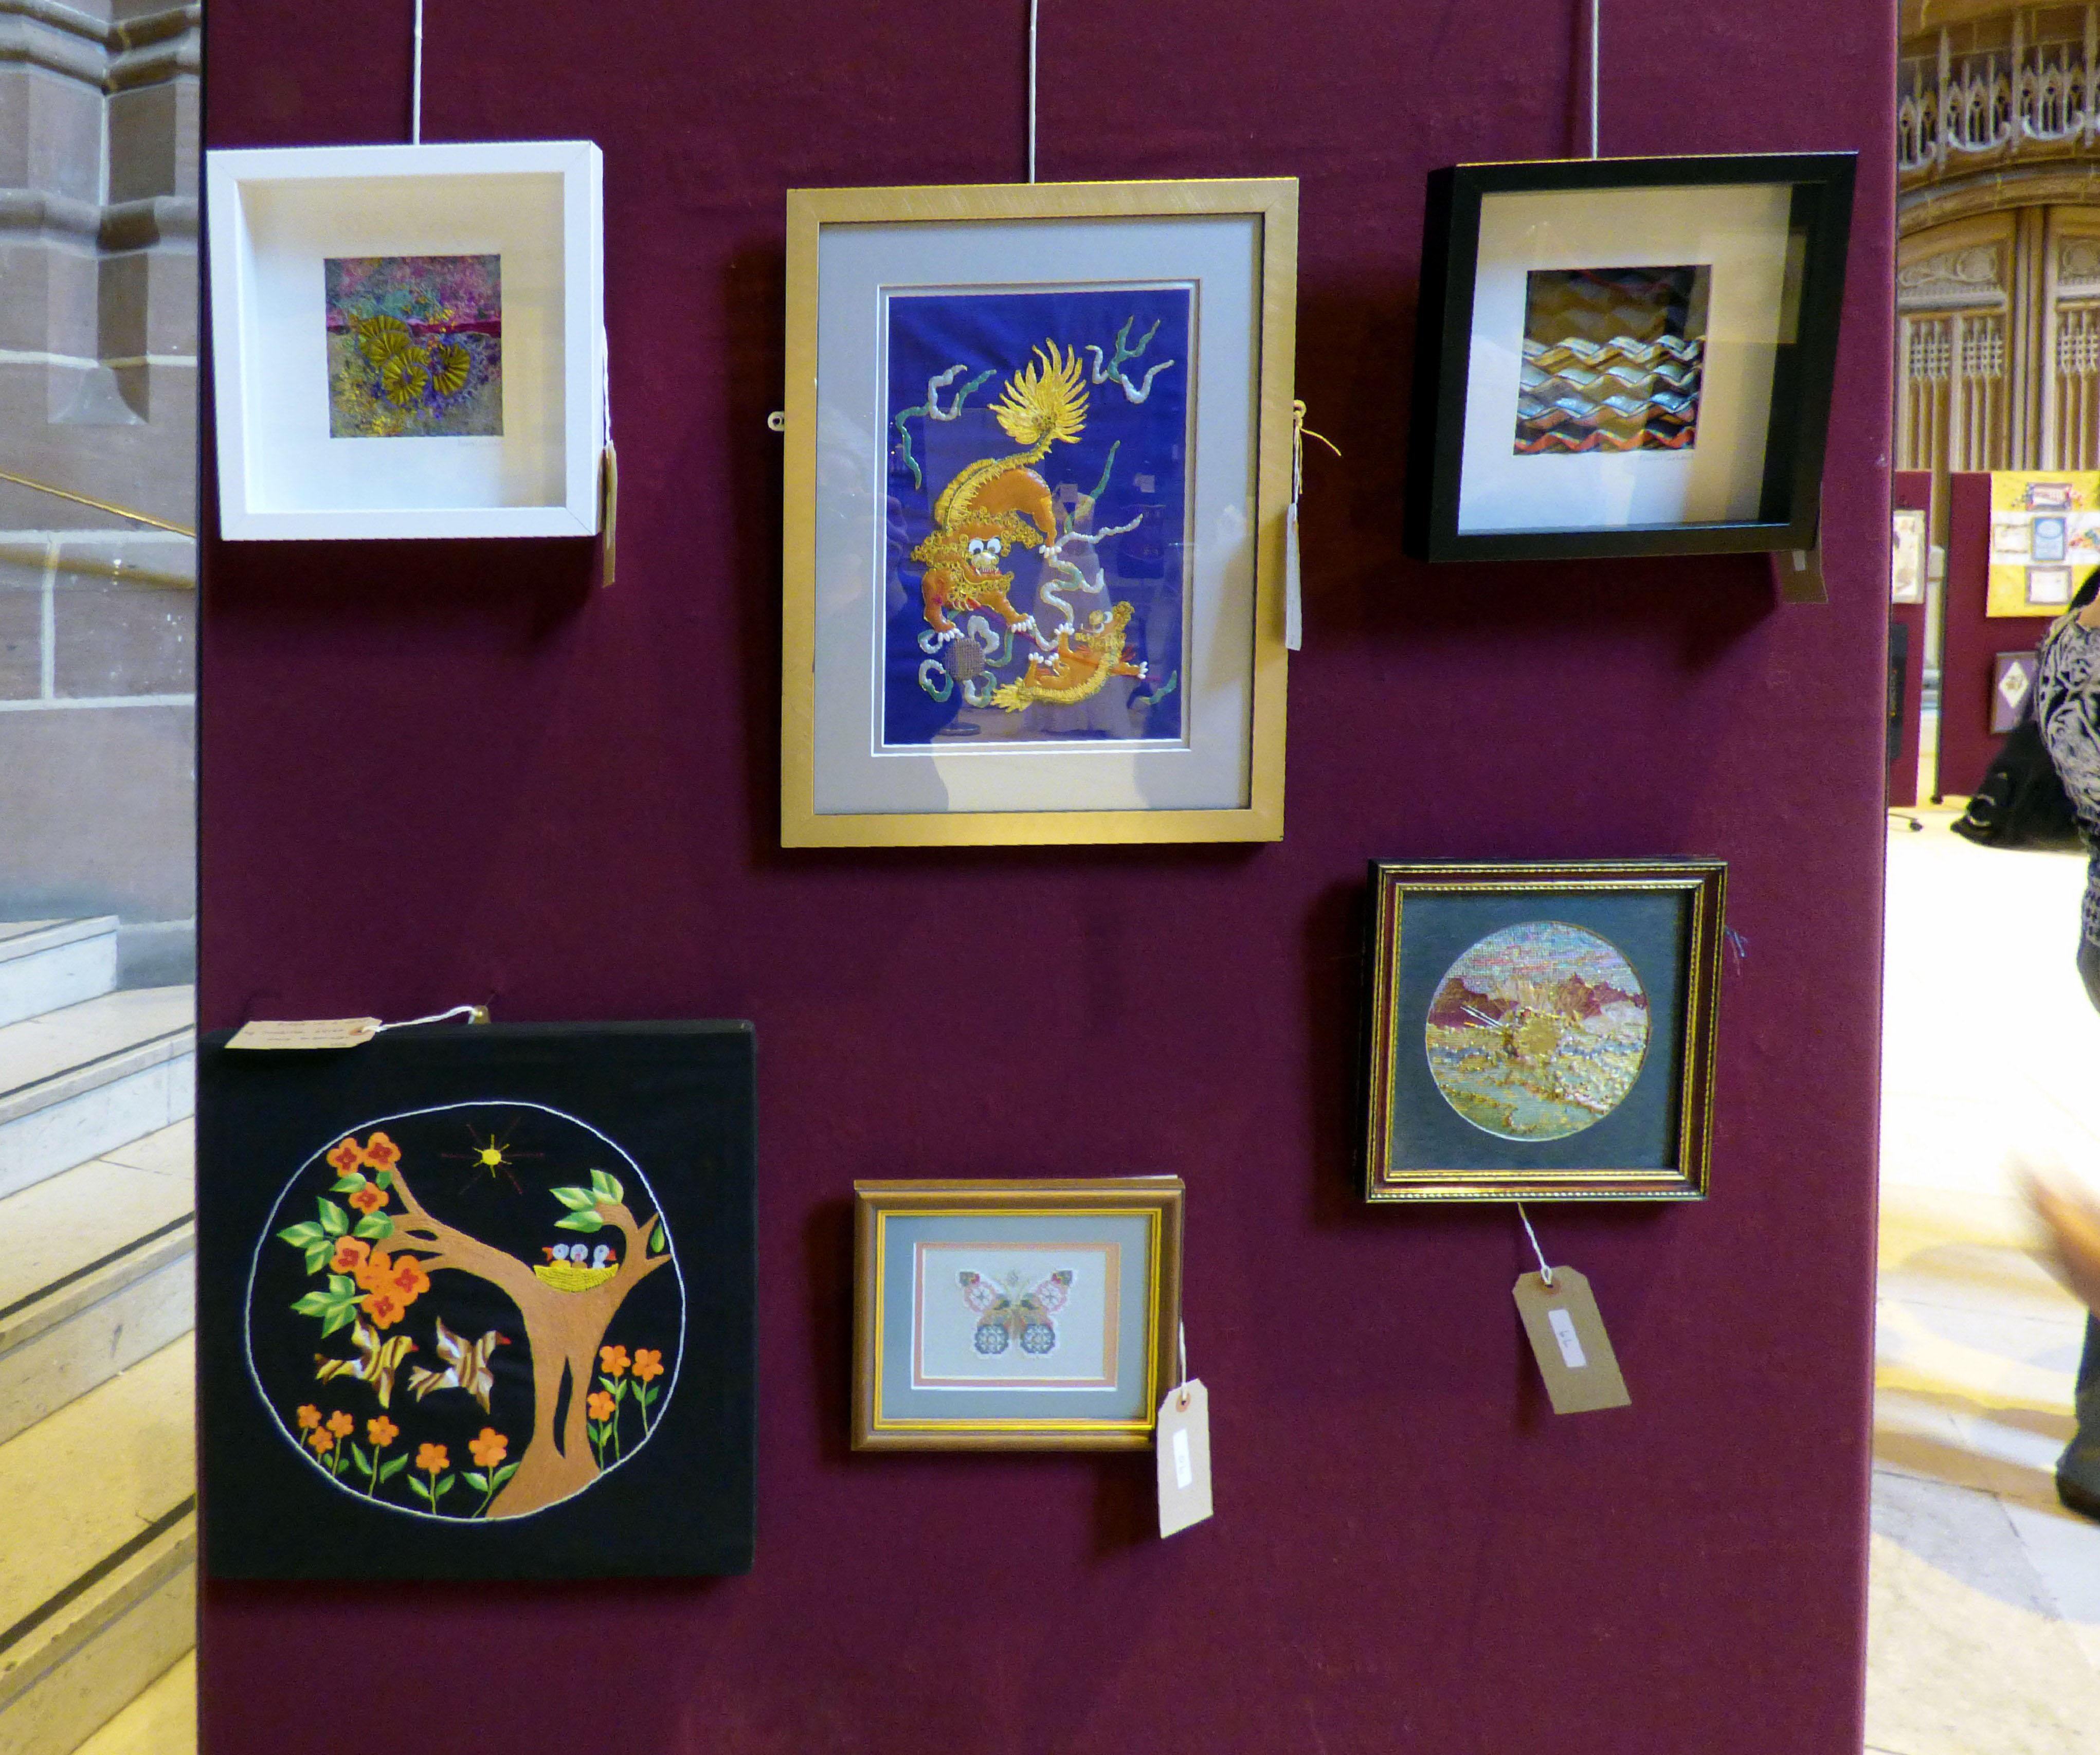 MY GARDEN by Nawal Gebreel, HAPPINESS by Vicky Williams, LANDSCAPE by Nawal Gebreel, BIRDS IN A NEST by Sabiter Akter, BUTTERFLY 1 by Ann Thyer, LET THERE BE LIGHT by June Hodgkiss at 60 Glorious years exhibition 2016